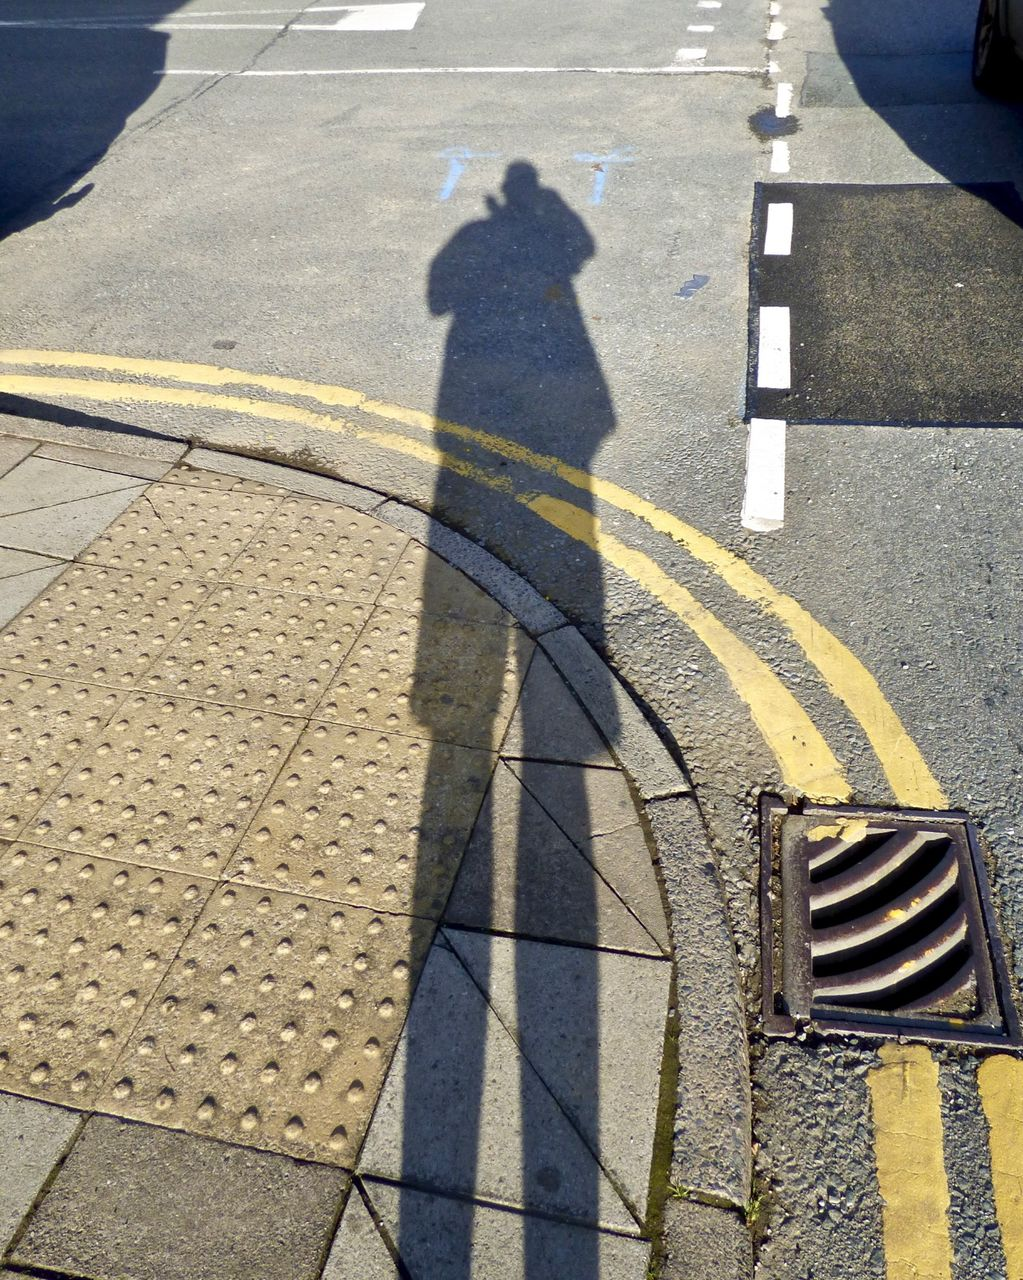 Self Portrait Following the Trend of Posting Photographs of Road Markings on Instagram 2018